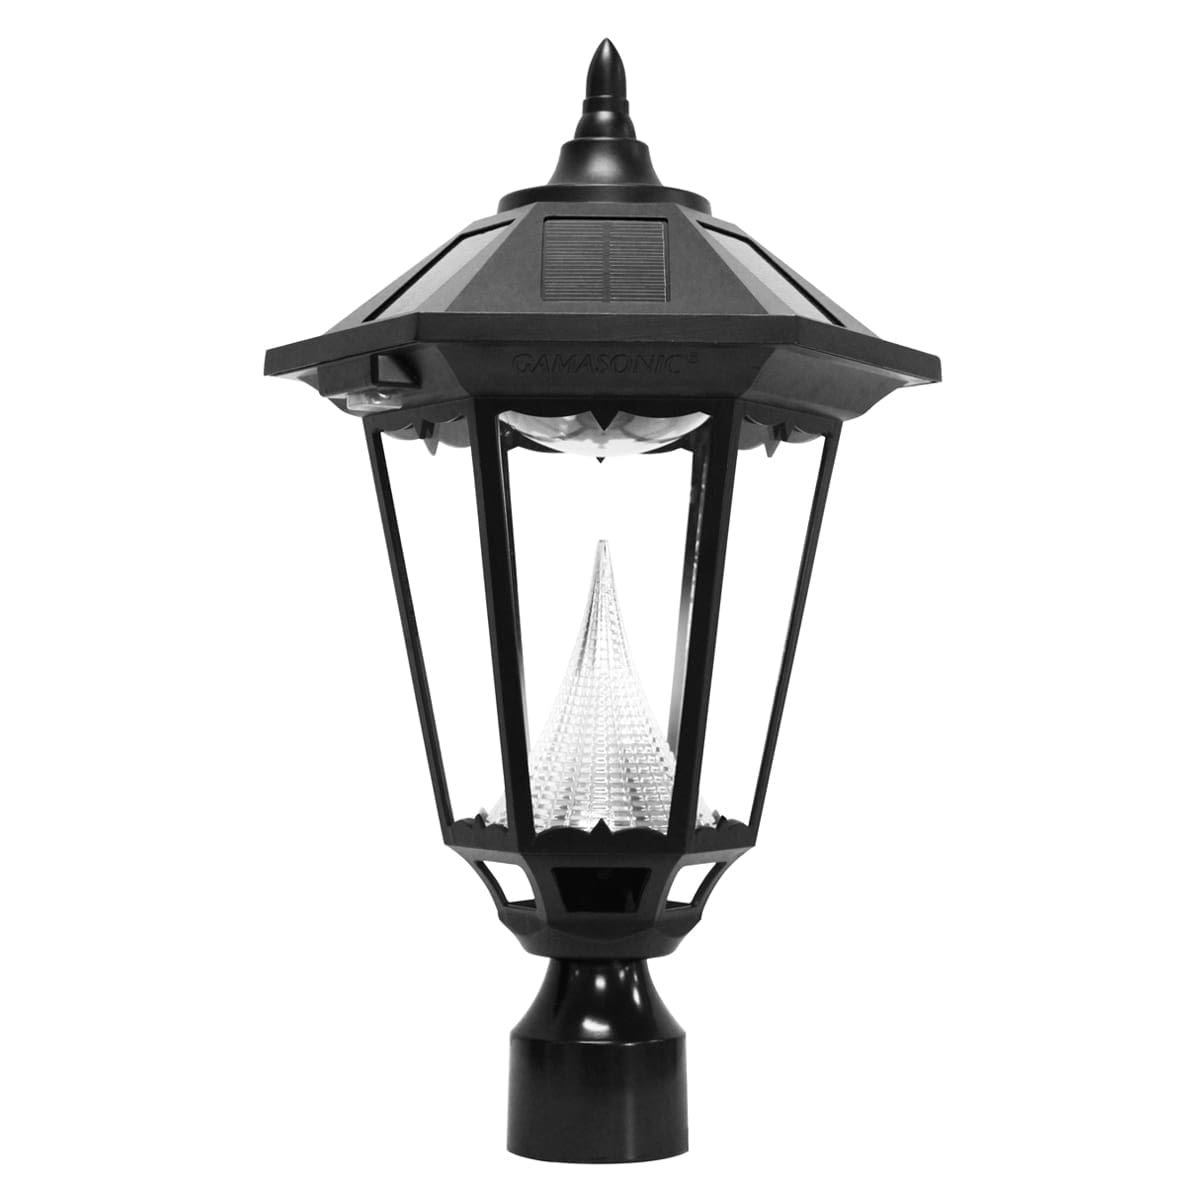 Windsor Solar Lamp by Gama Sonic GS-99F